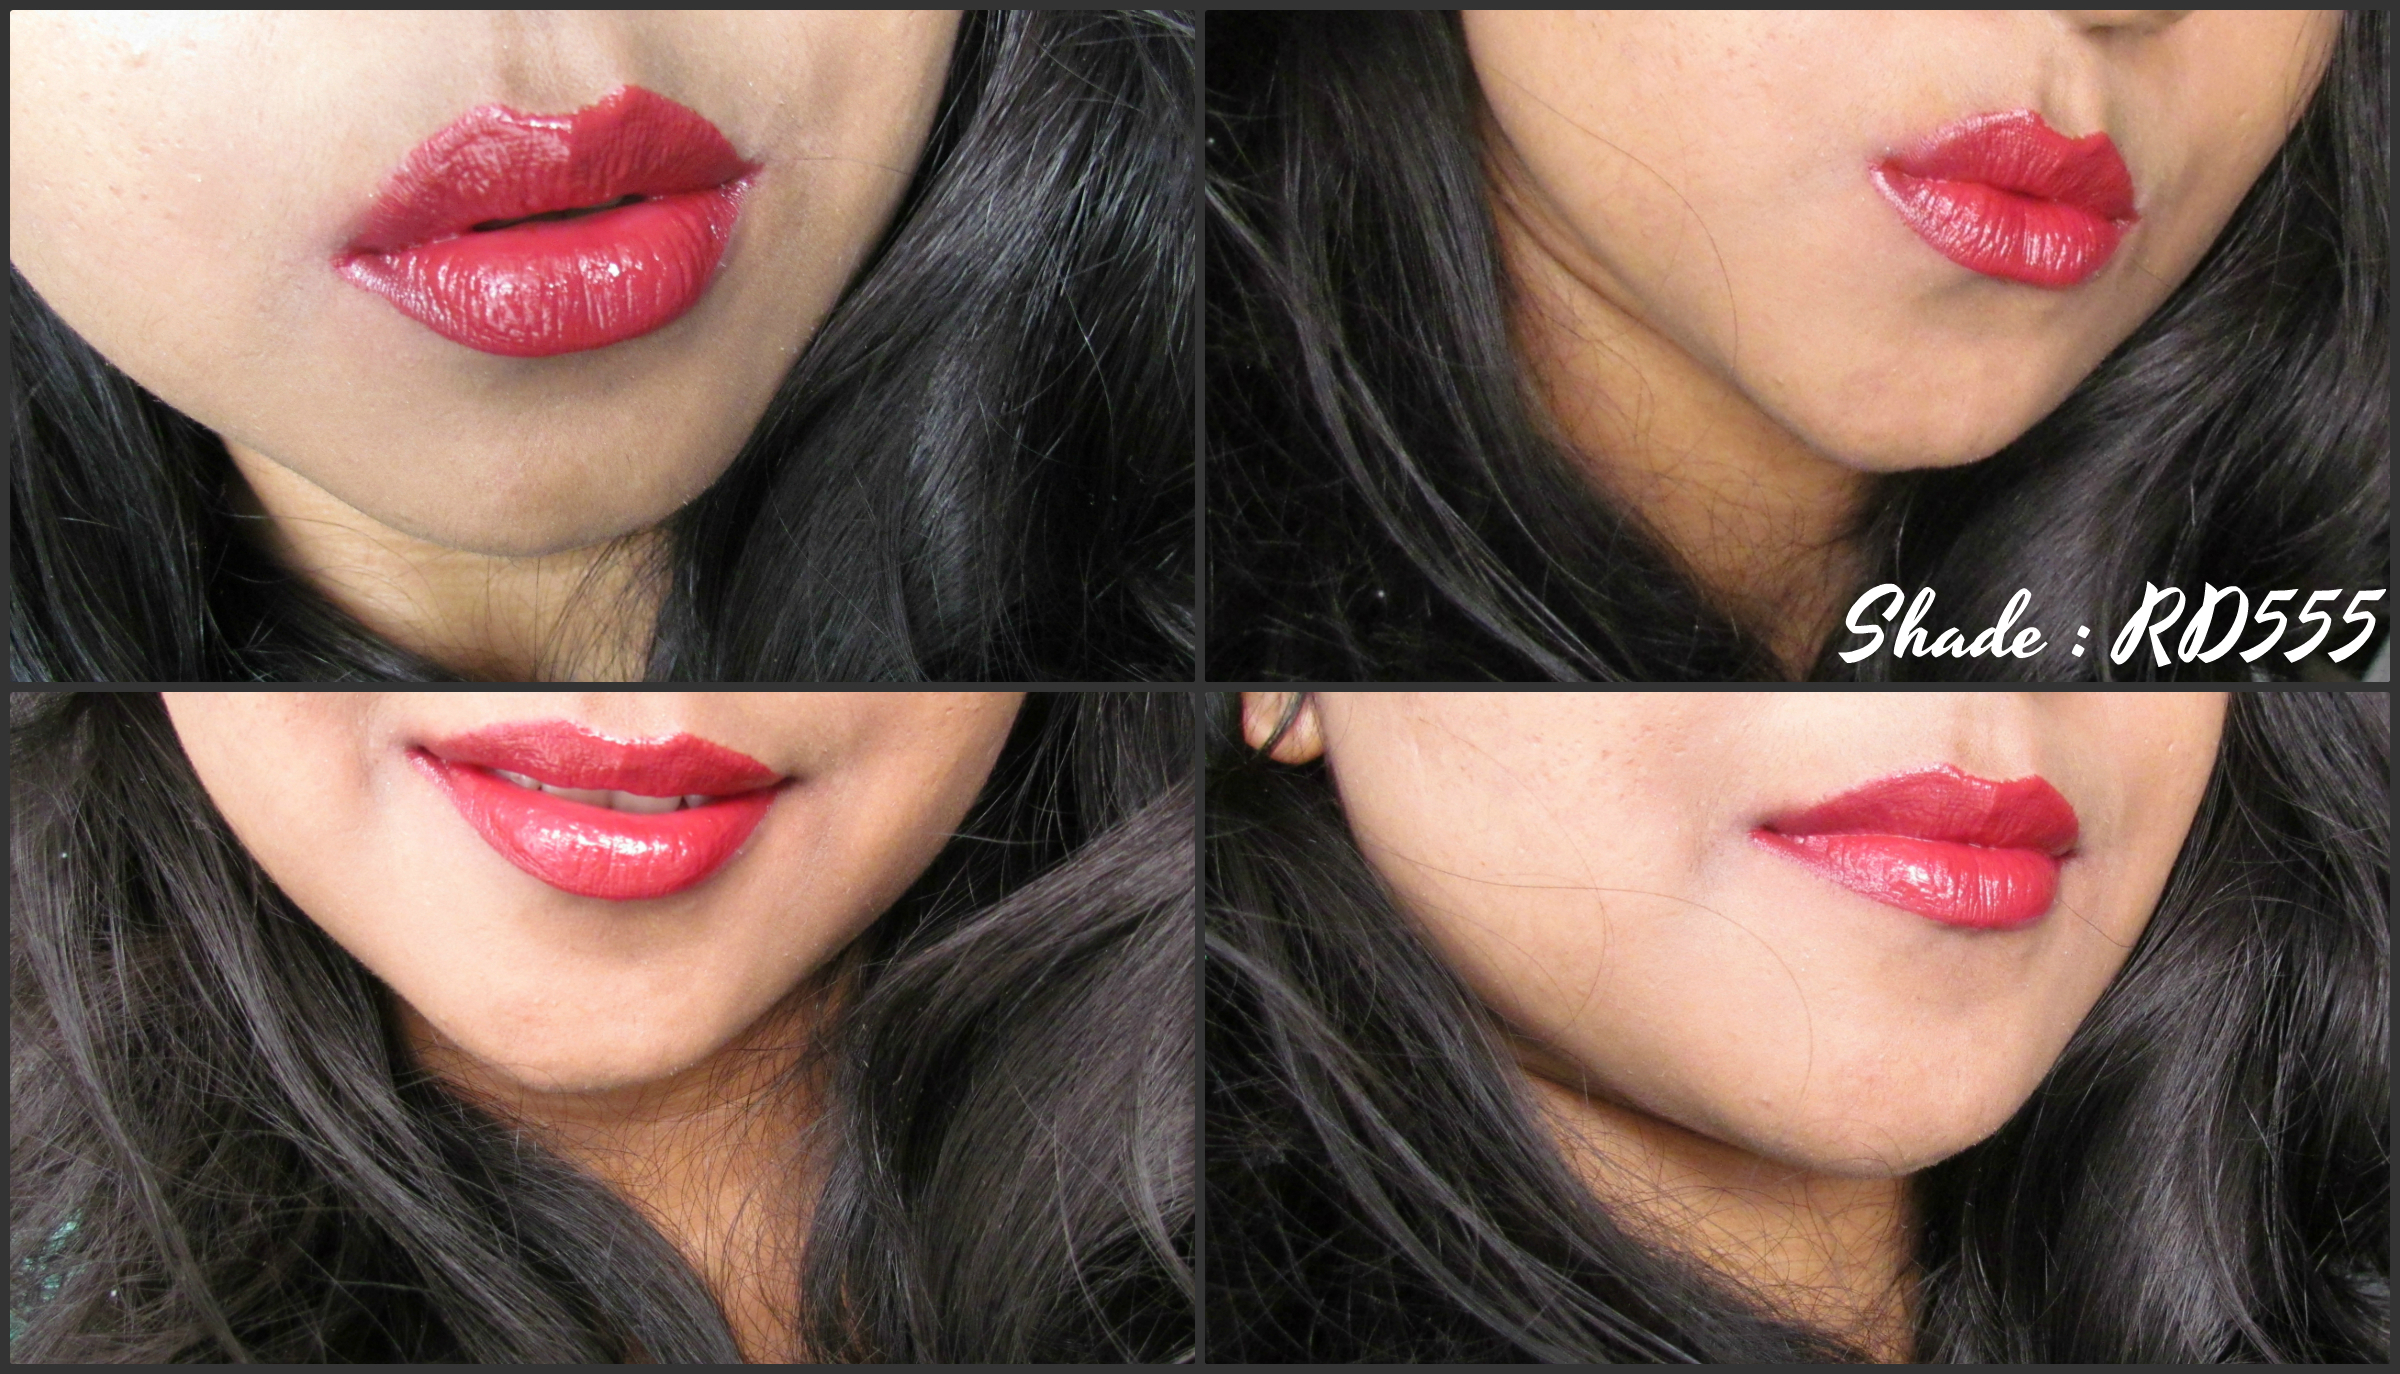 Za Vibrant Moist Lipsticks – Swatches, Review & LOTDs